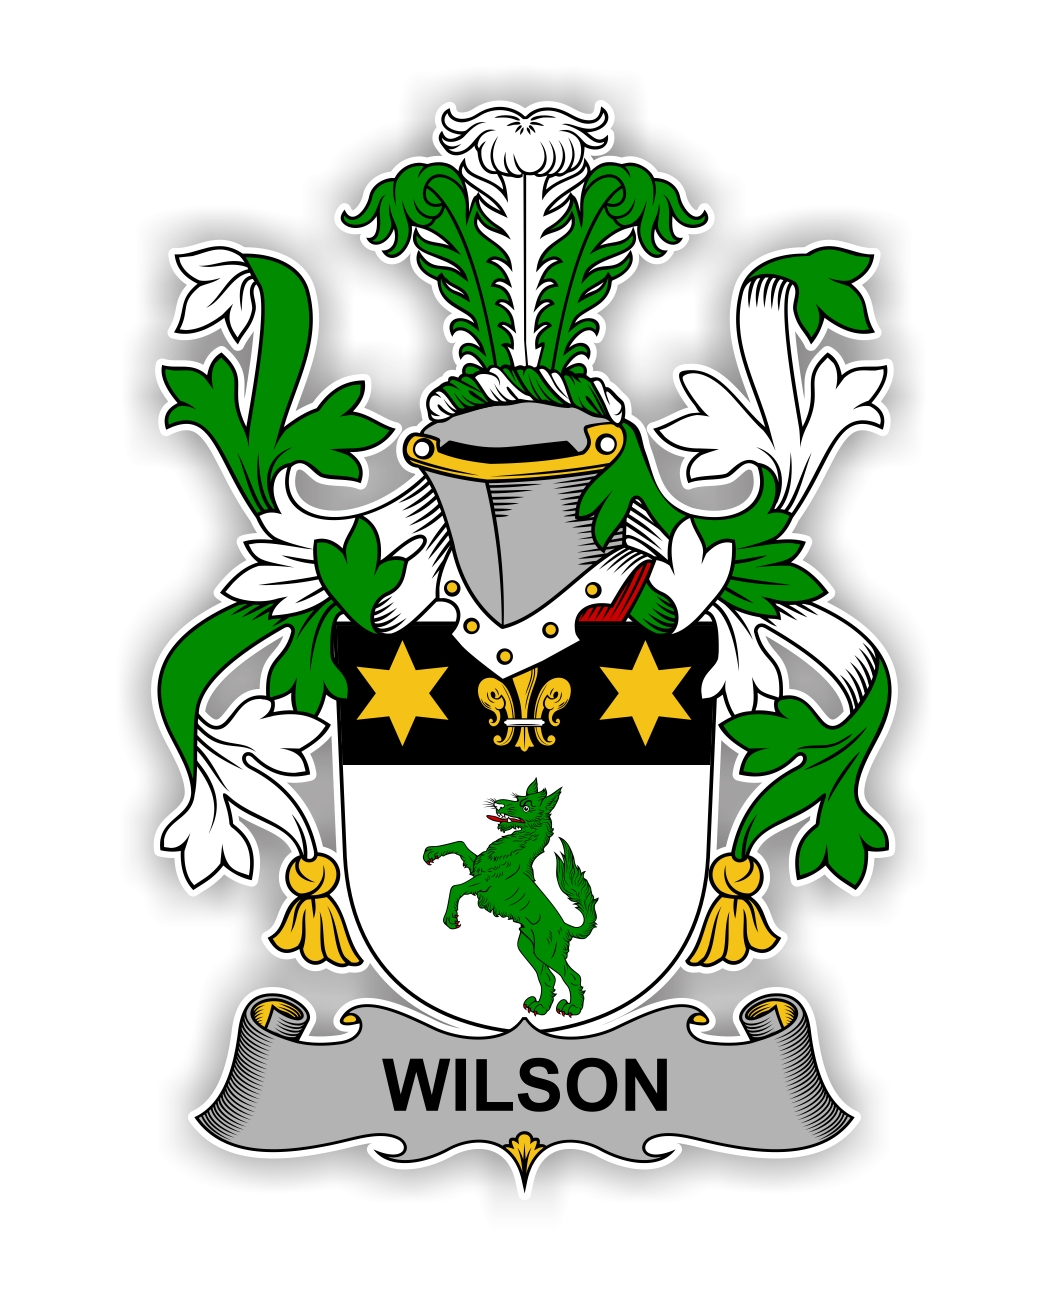 Wilson Family Crest Vinyl Die Cut Decal Sticker 4